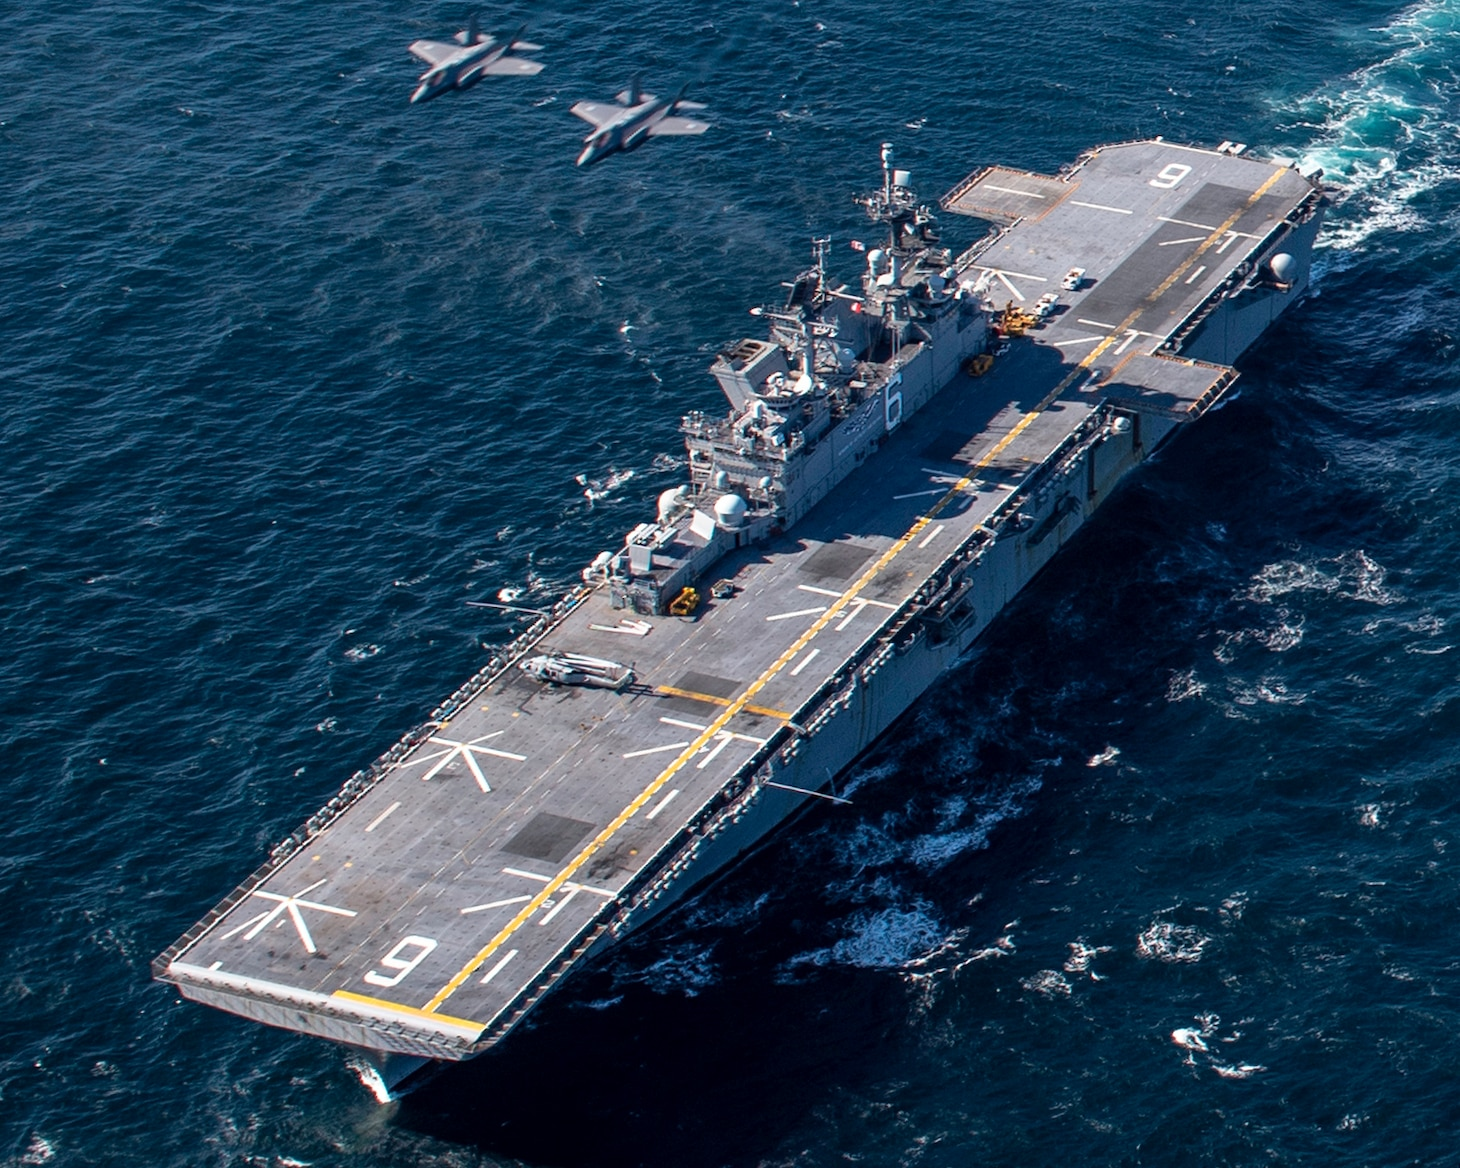 F-35 Lightning II aircraft  assigned to the Japan Air Self-Defense Force conduct integrated air operations with the forward-deployed amphibious assault ship USS America (LHA 6).